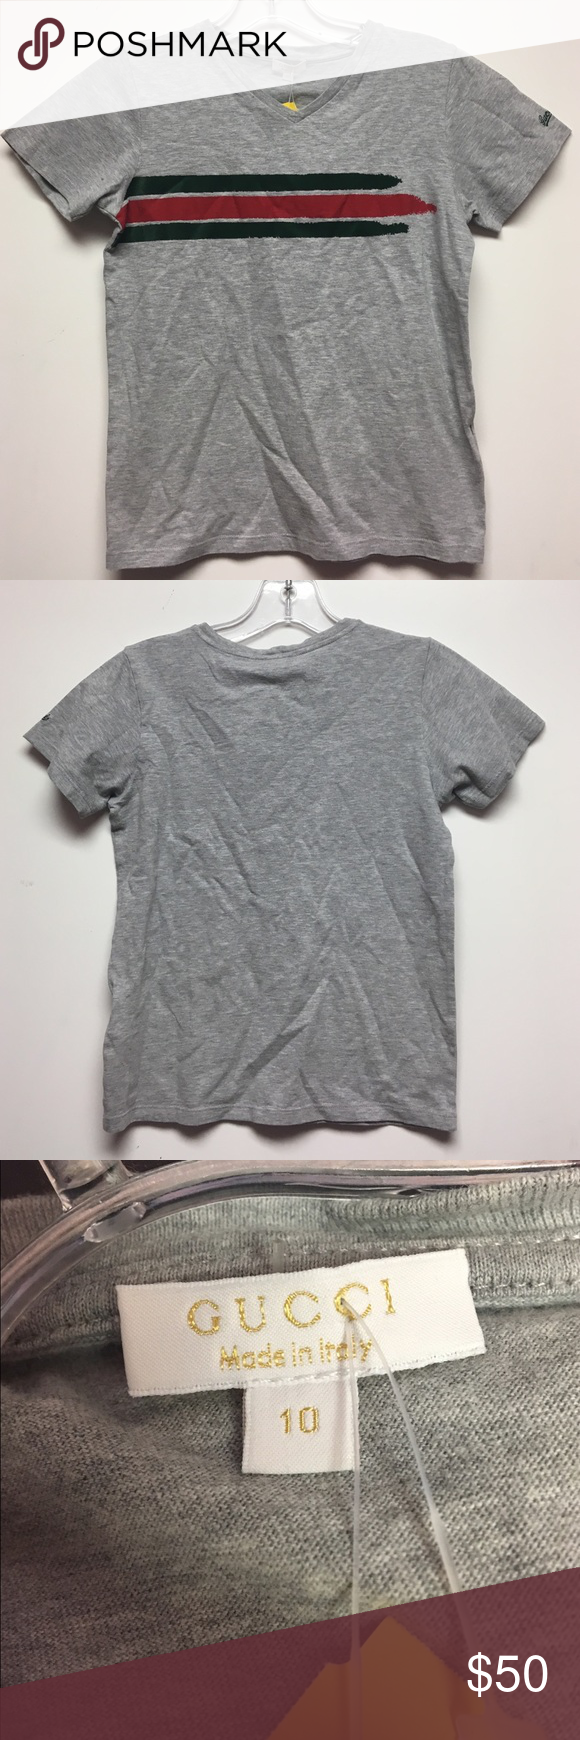 6349de372ecde Gucci boys size 10 grey t-shirt Gucci boys size 10 grey t-shirt. Short  sleeve cotton material. Gently worn in great condition. Consigned to my  boutique no ...